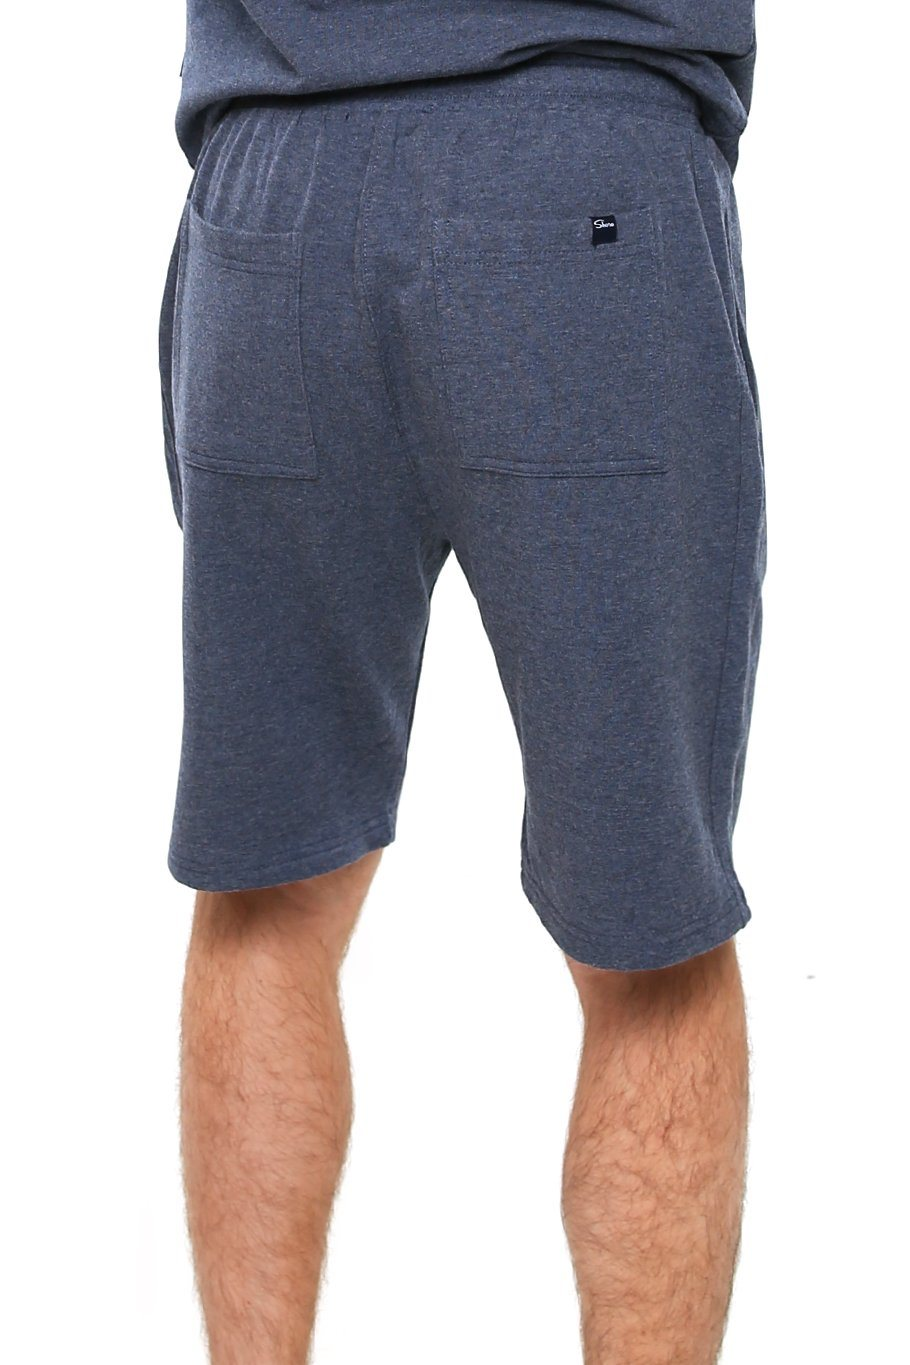 San Diego Fleece Shorts - Lake - Shore